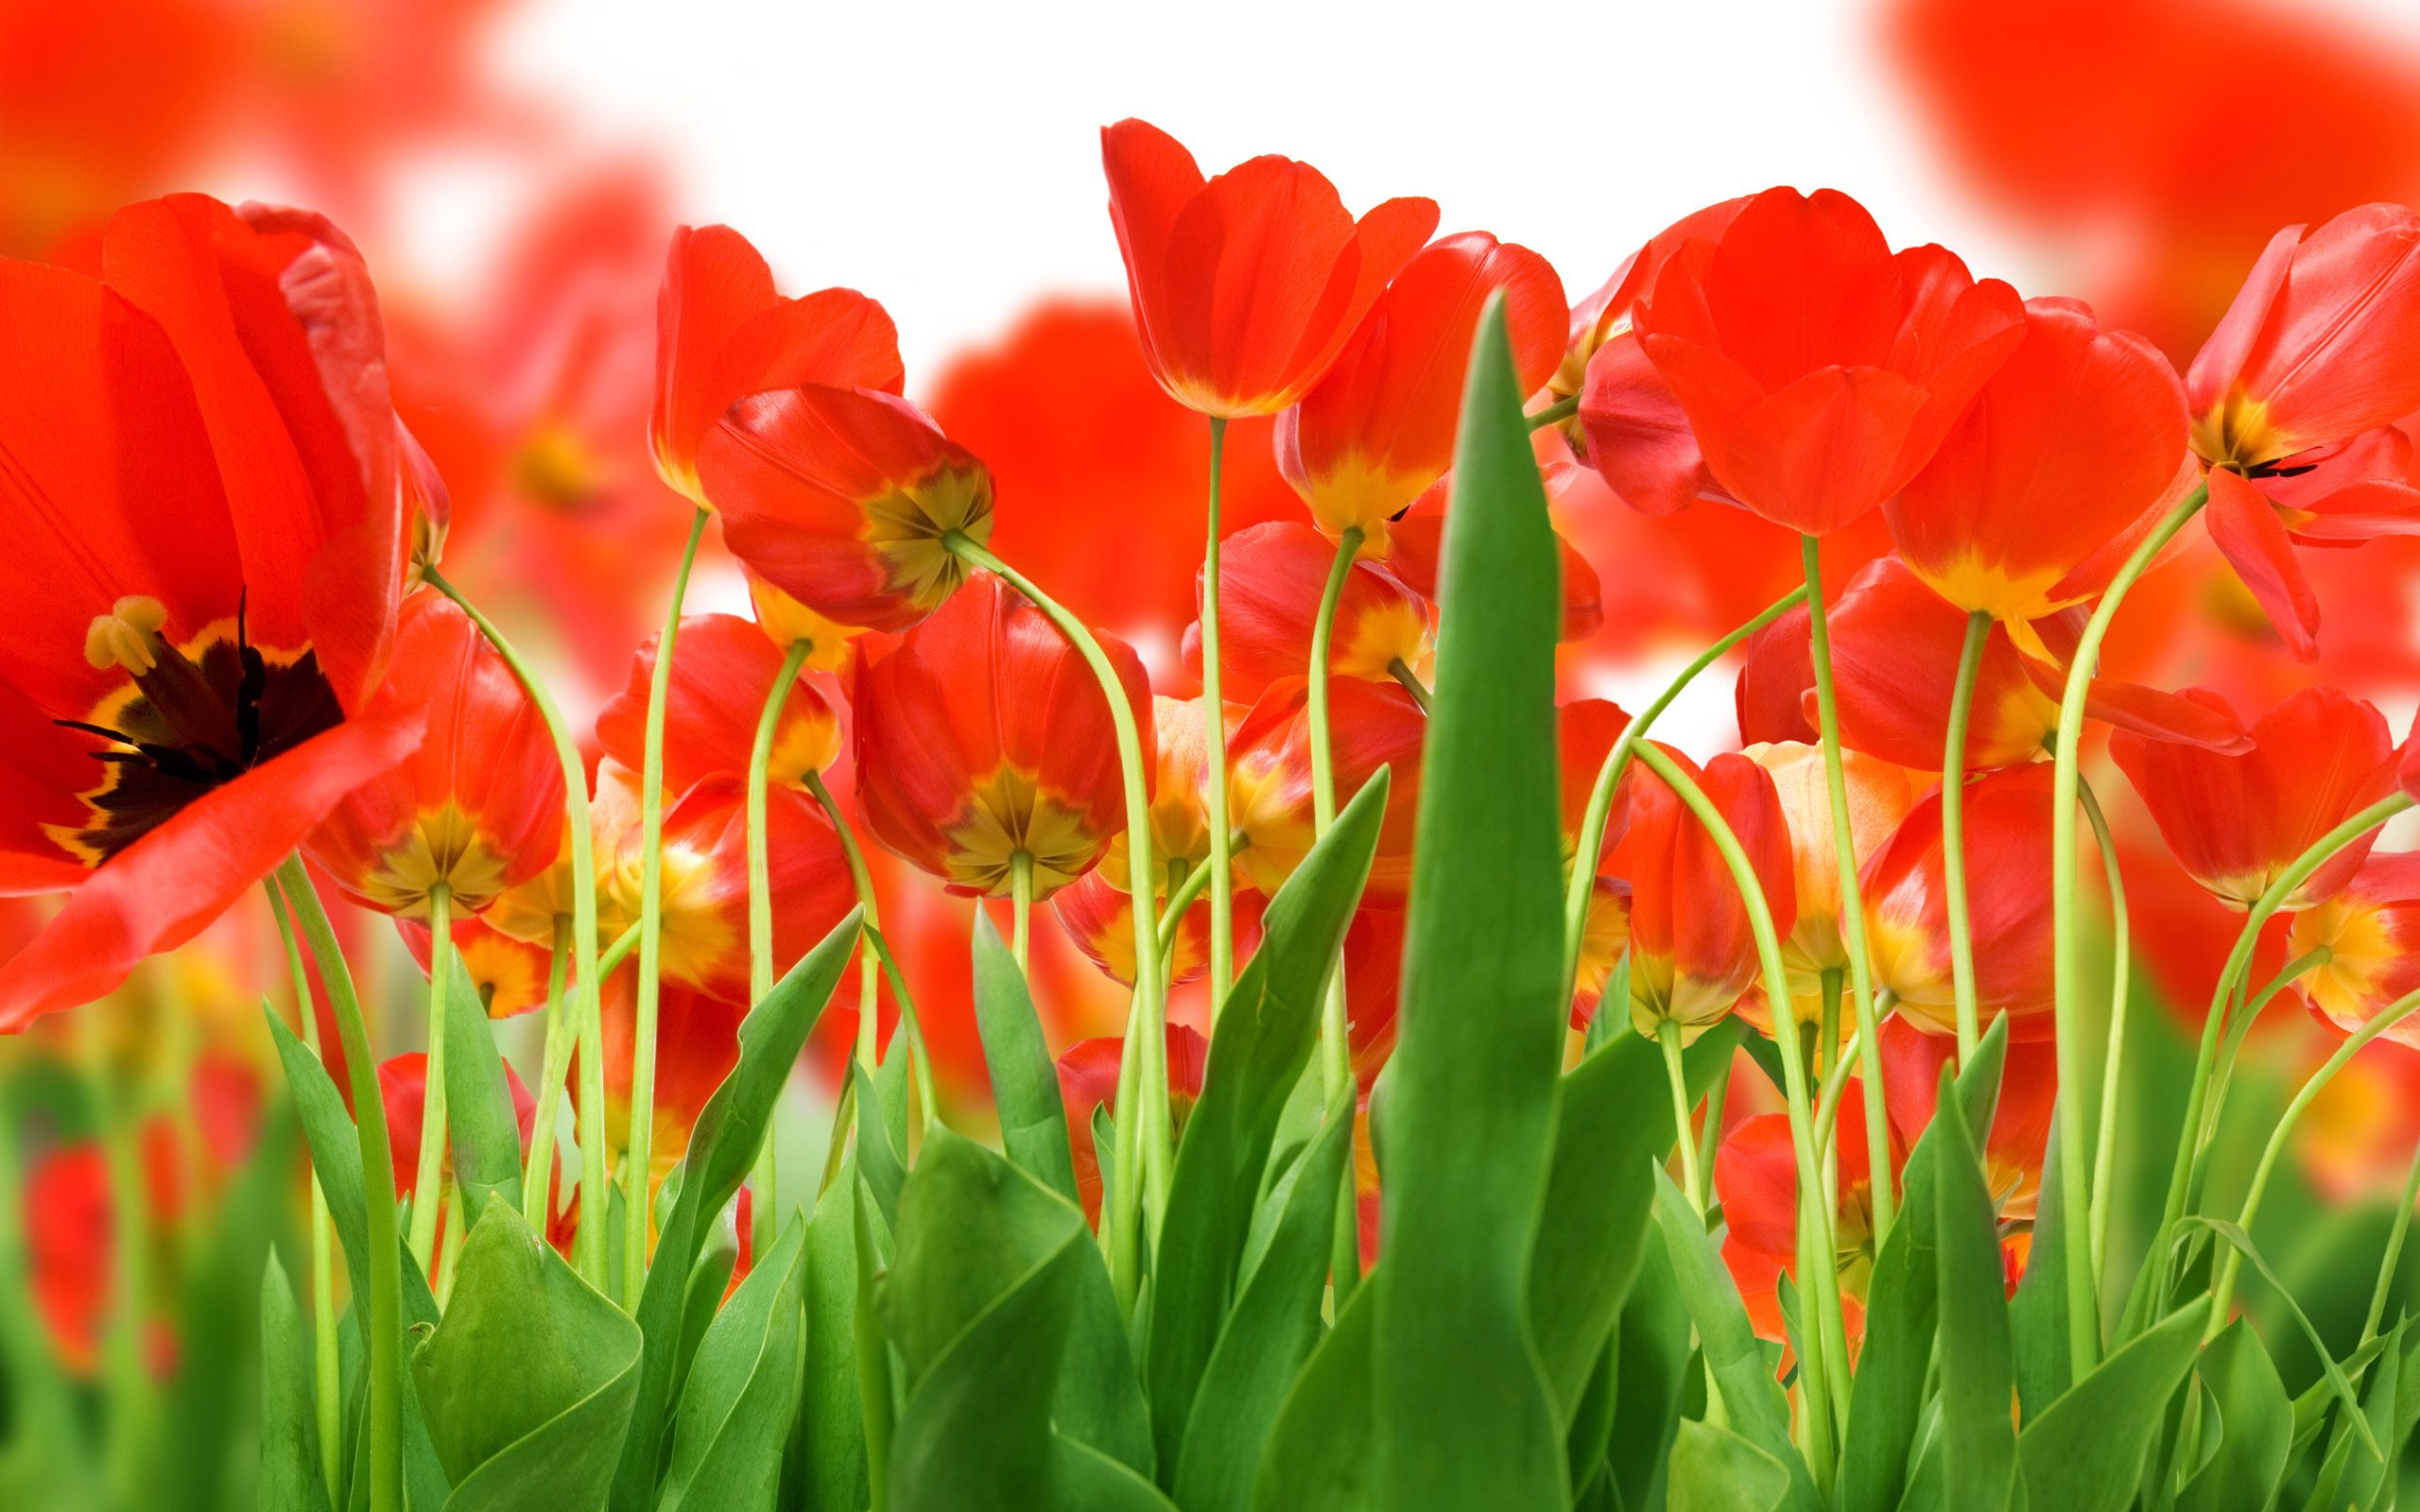 Hd Red Tulips Wallpaper Download Free 94249 Large Flower Wallpaper Red Tulips Tulips Flowers